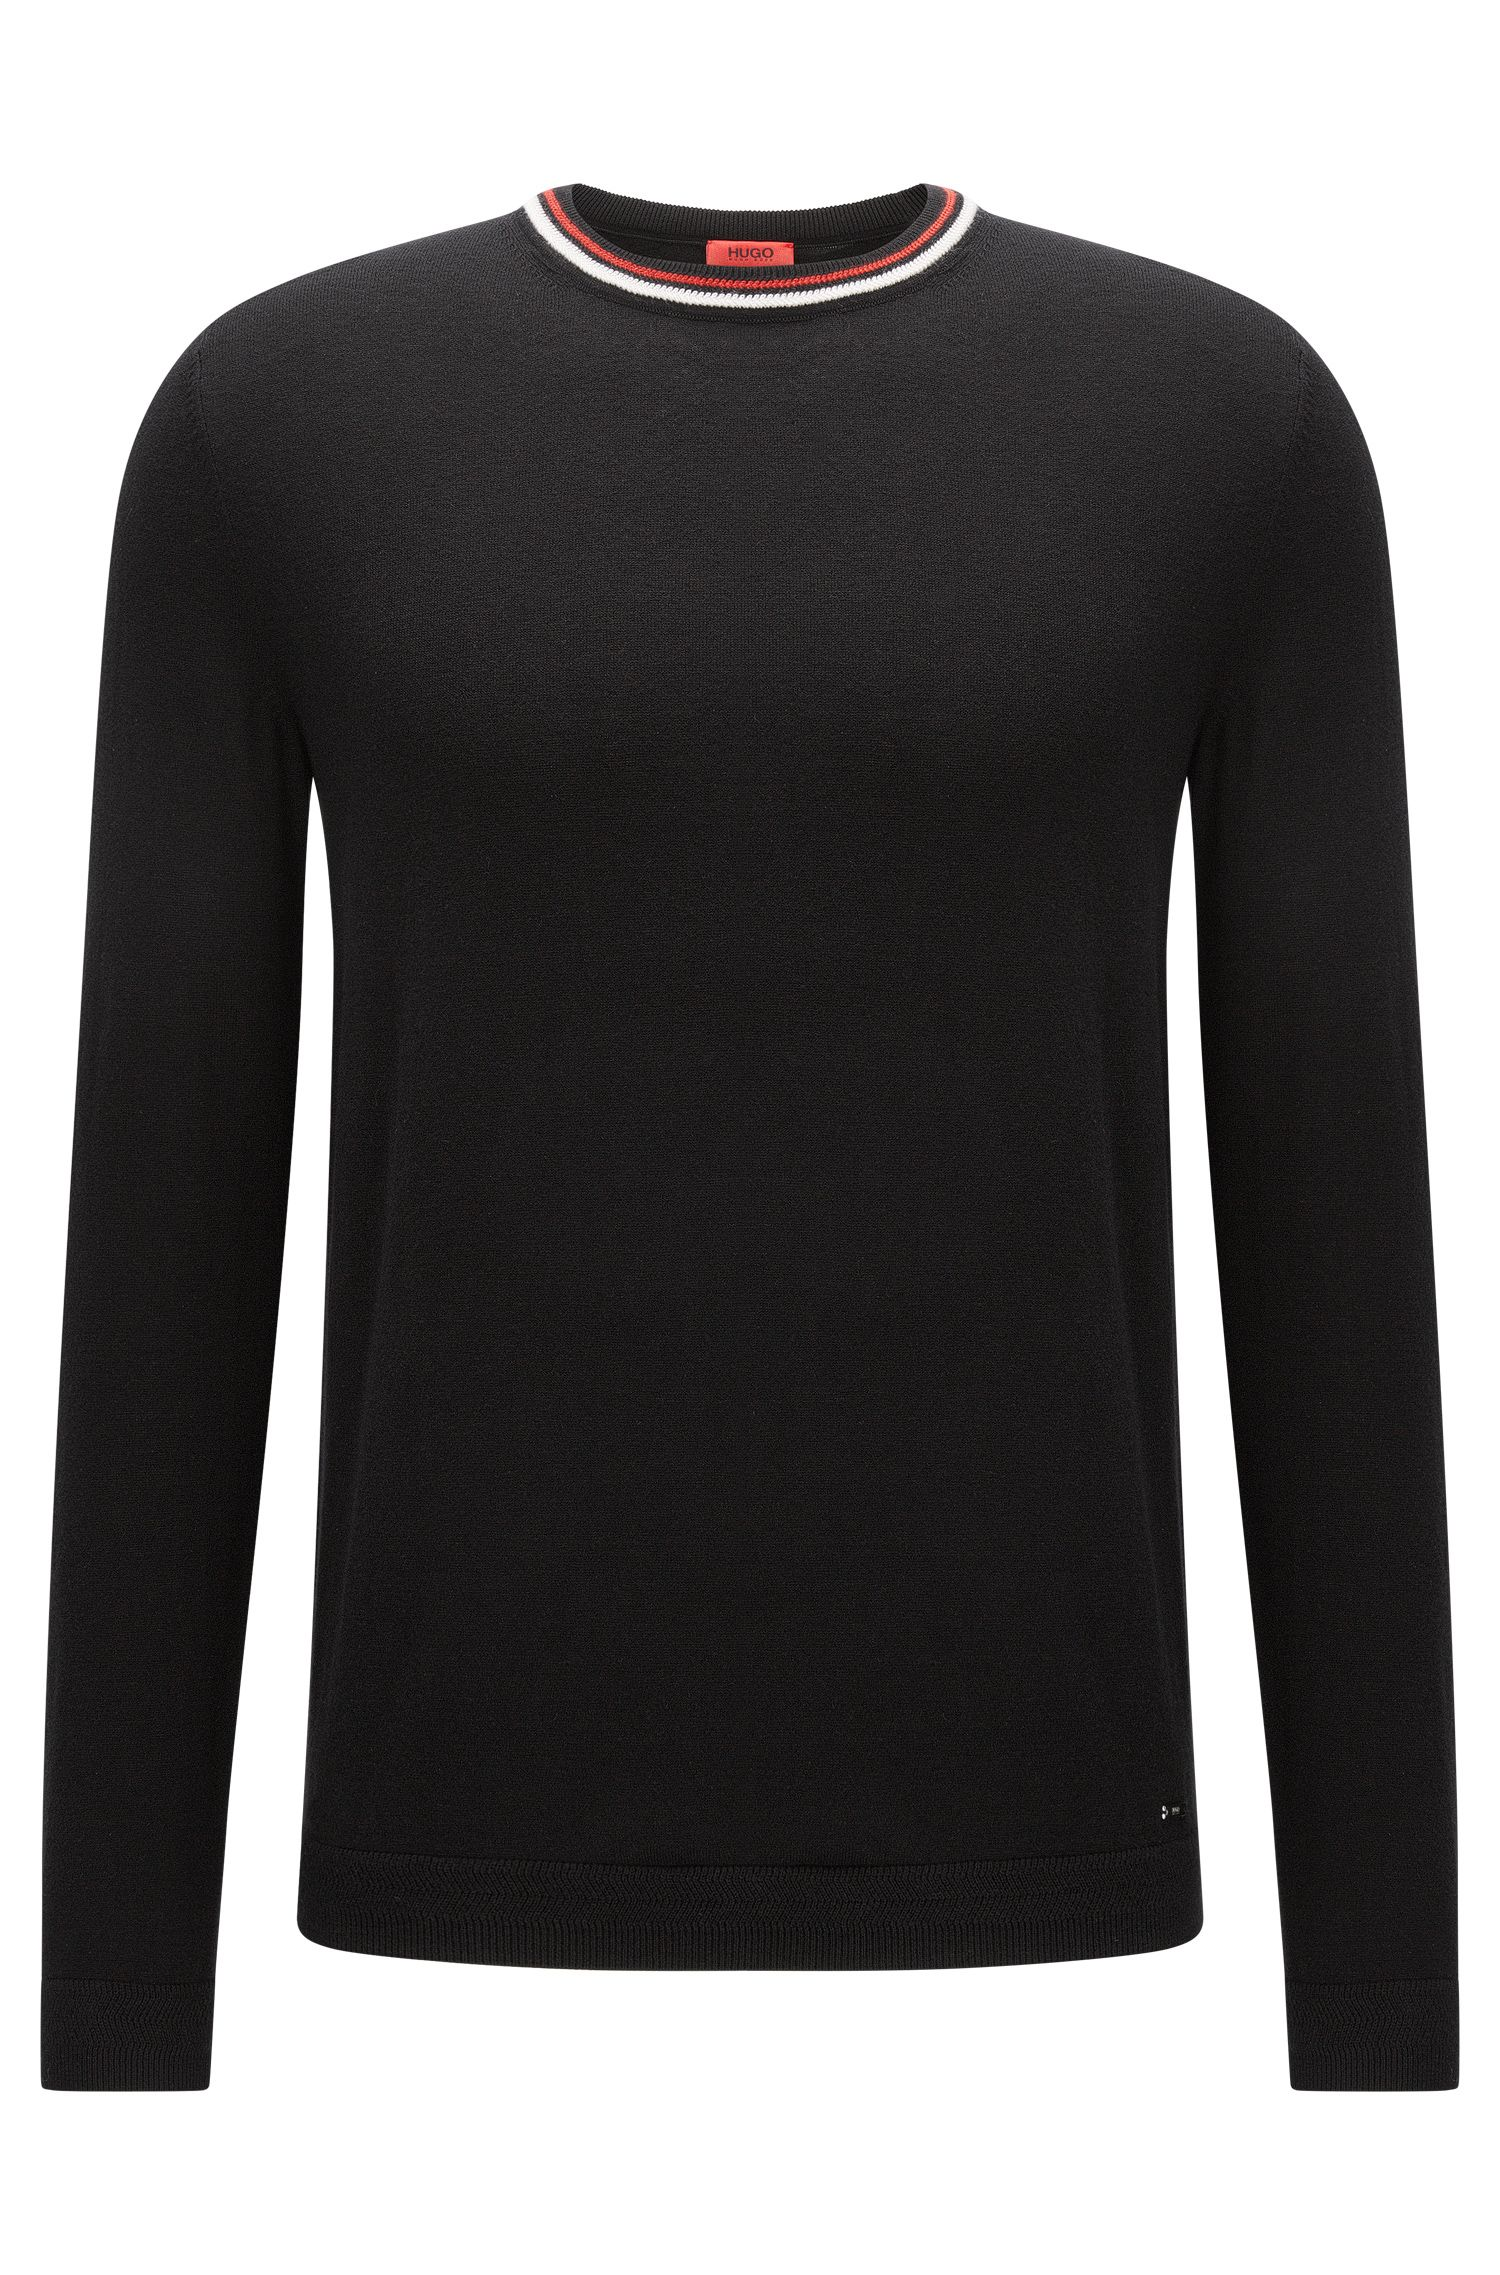 Crew-neck cotton-blend sweater with stripe detail